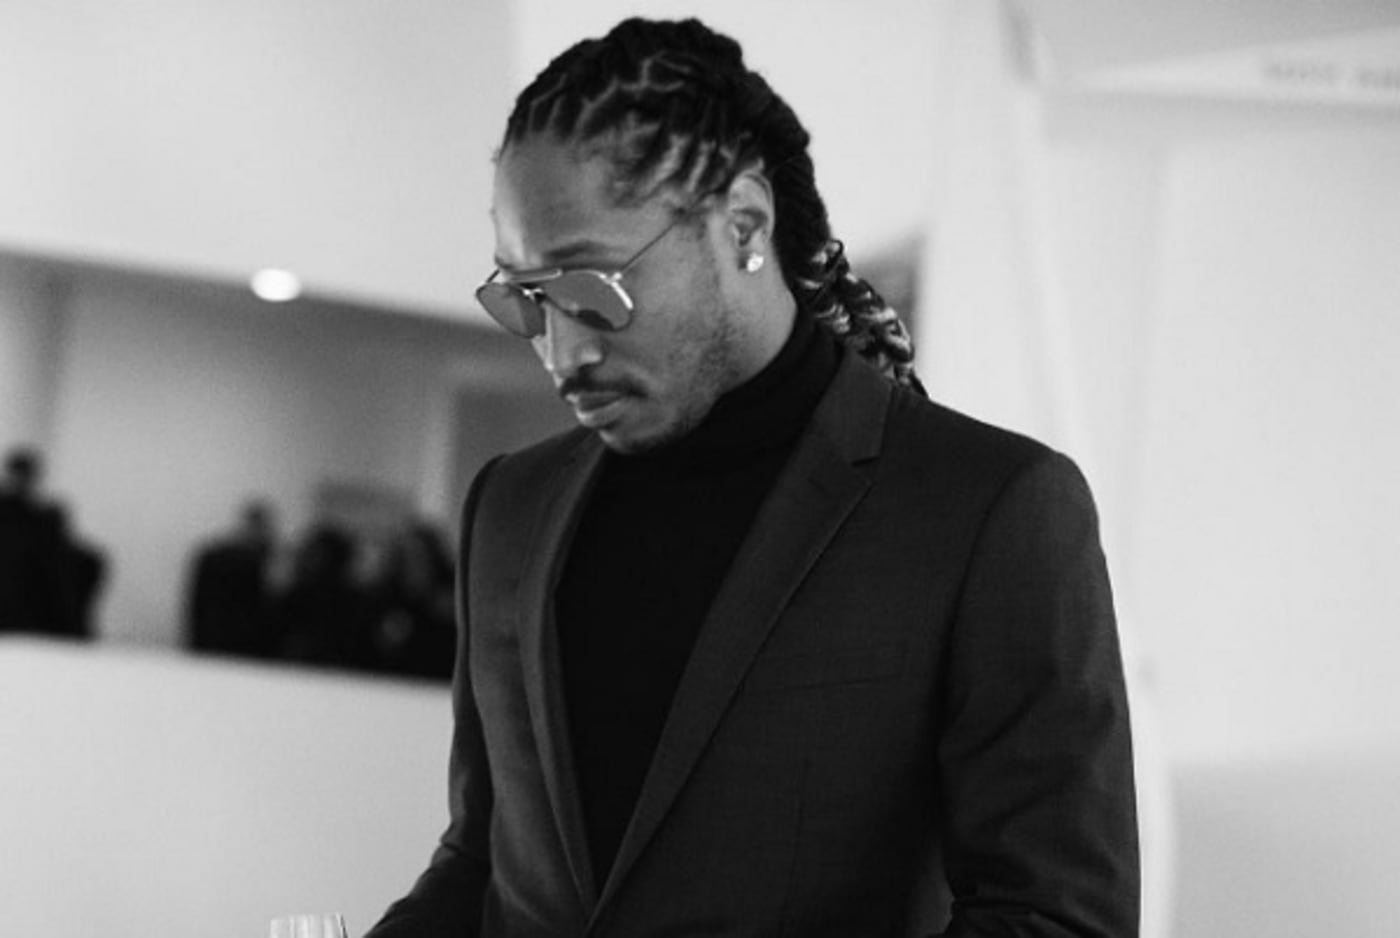 Future shares two new songs